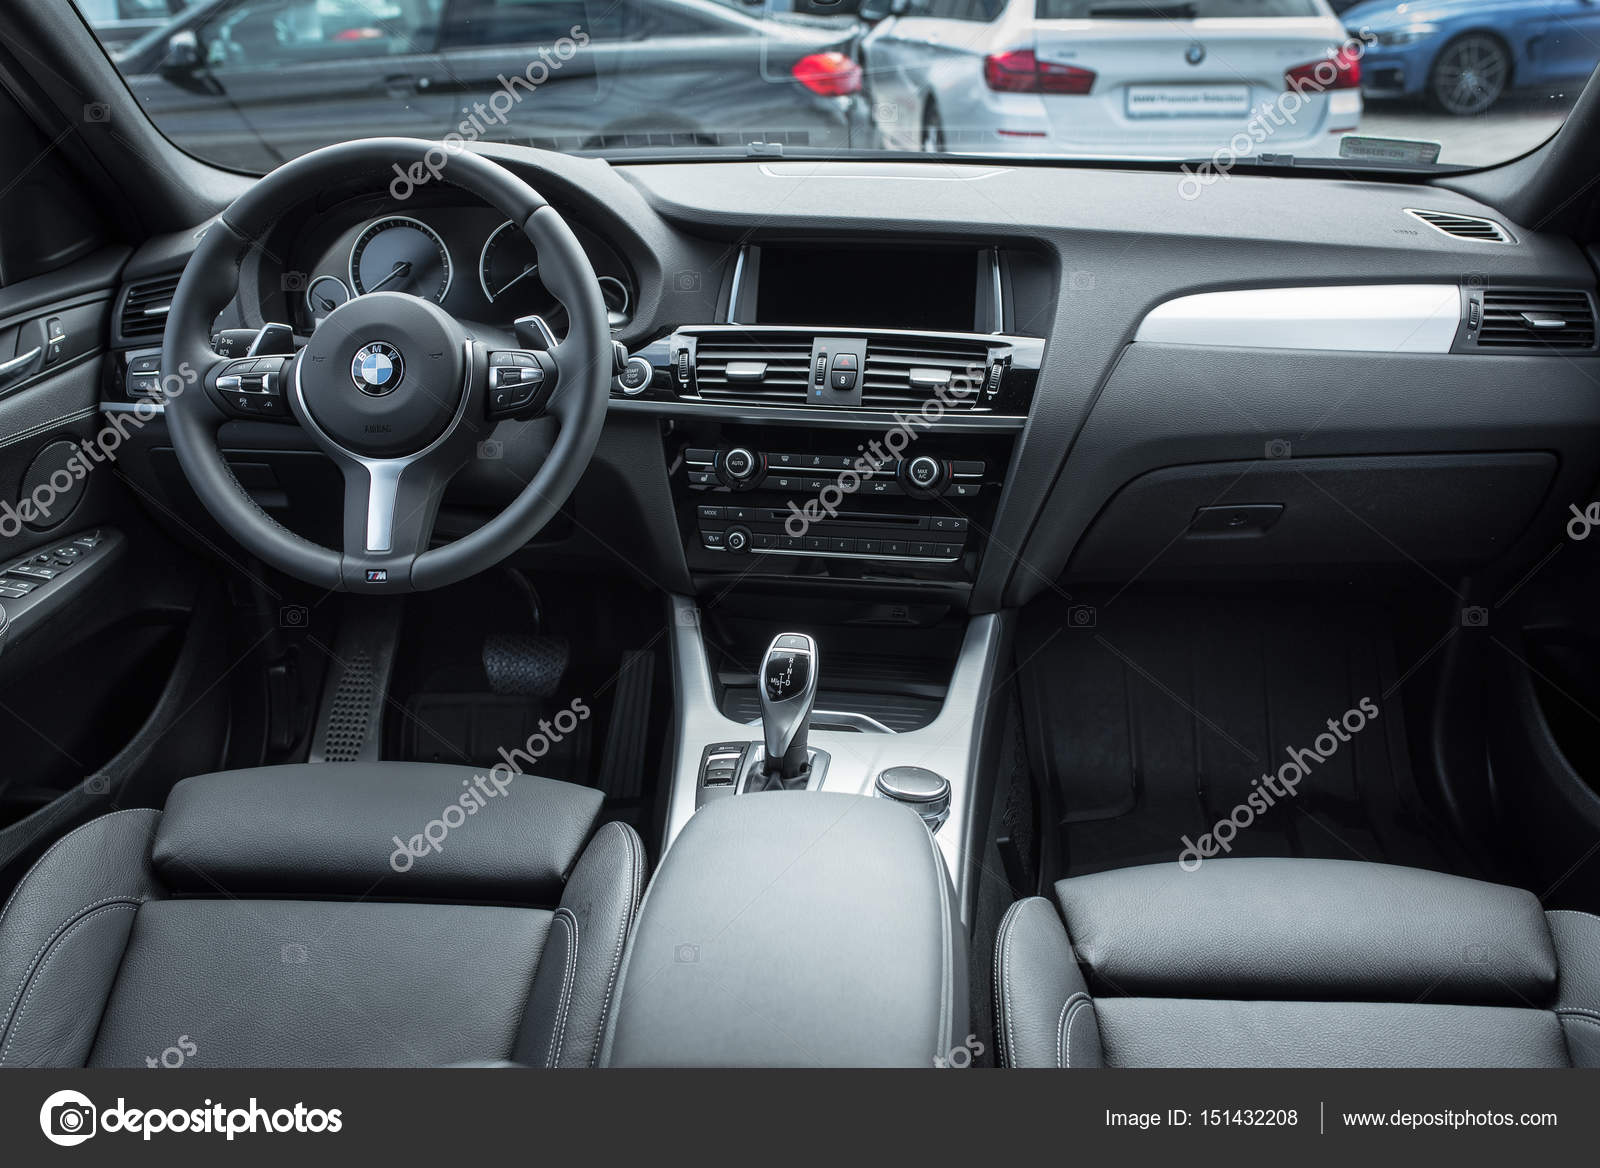 Photography Of Interior In New Model Bmw X1 Xdrive Presented By Dealer Bmw Inchcape Motor Wrocaw At March 2017 Stock Editorial Photo C Stockcrafter 151432208